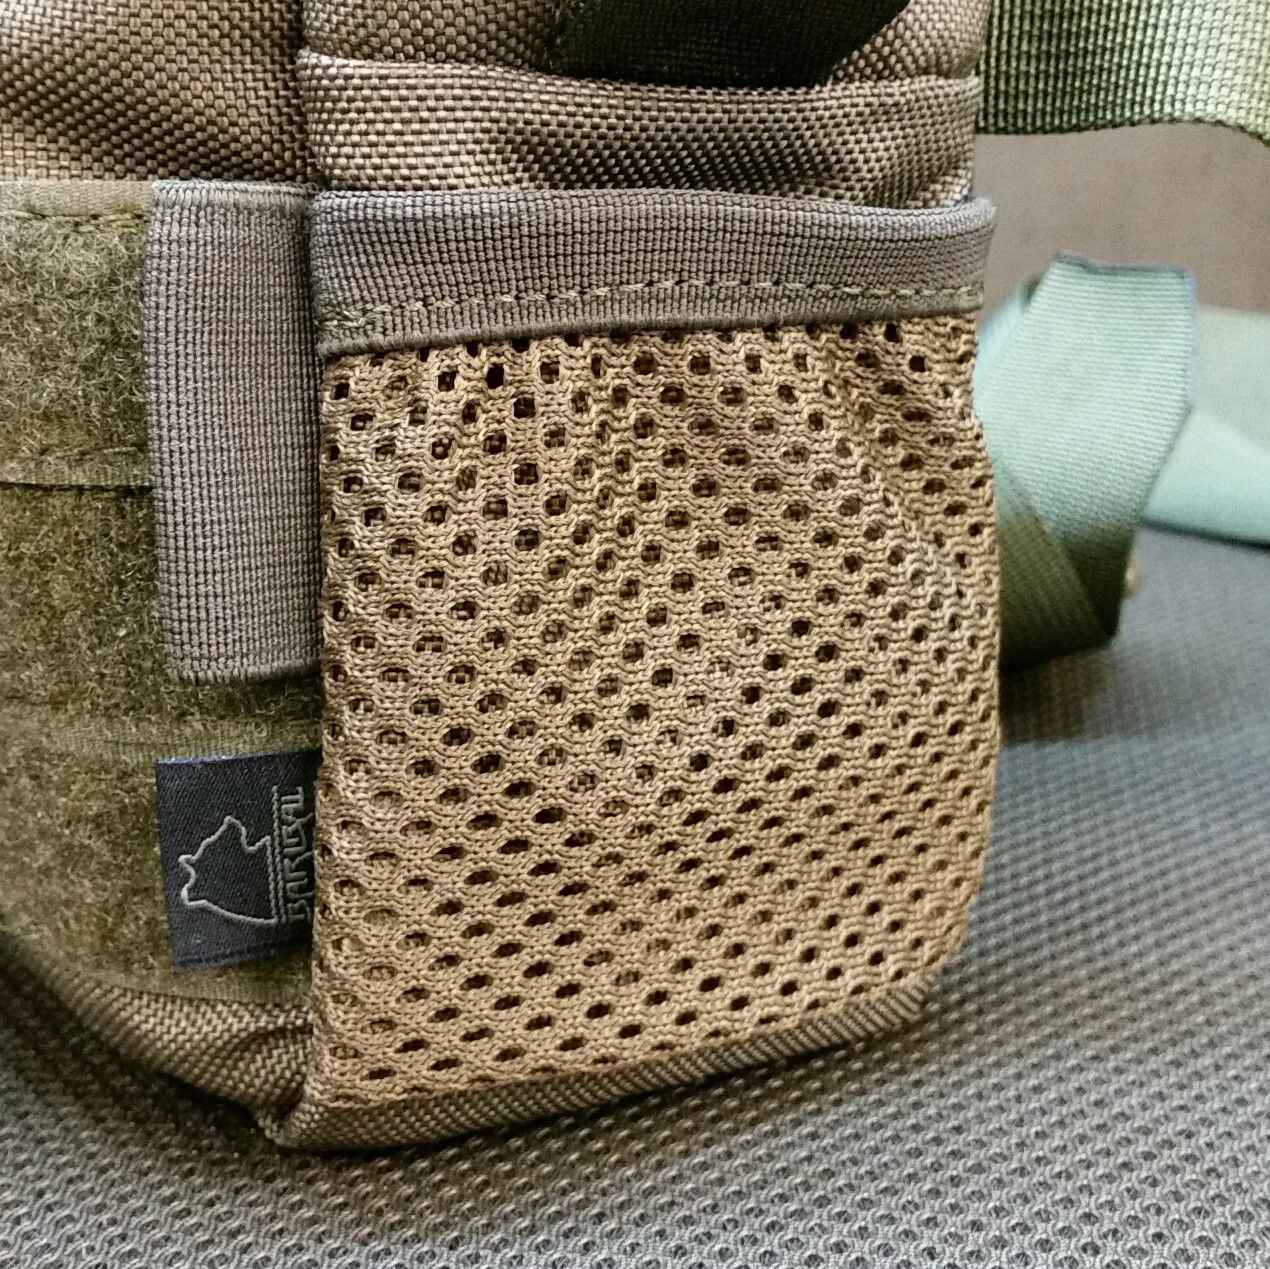 Mesh pocket instead of shockcord loops on the right side (looking at front) +7pln